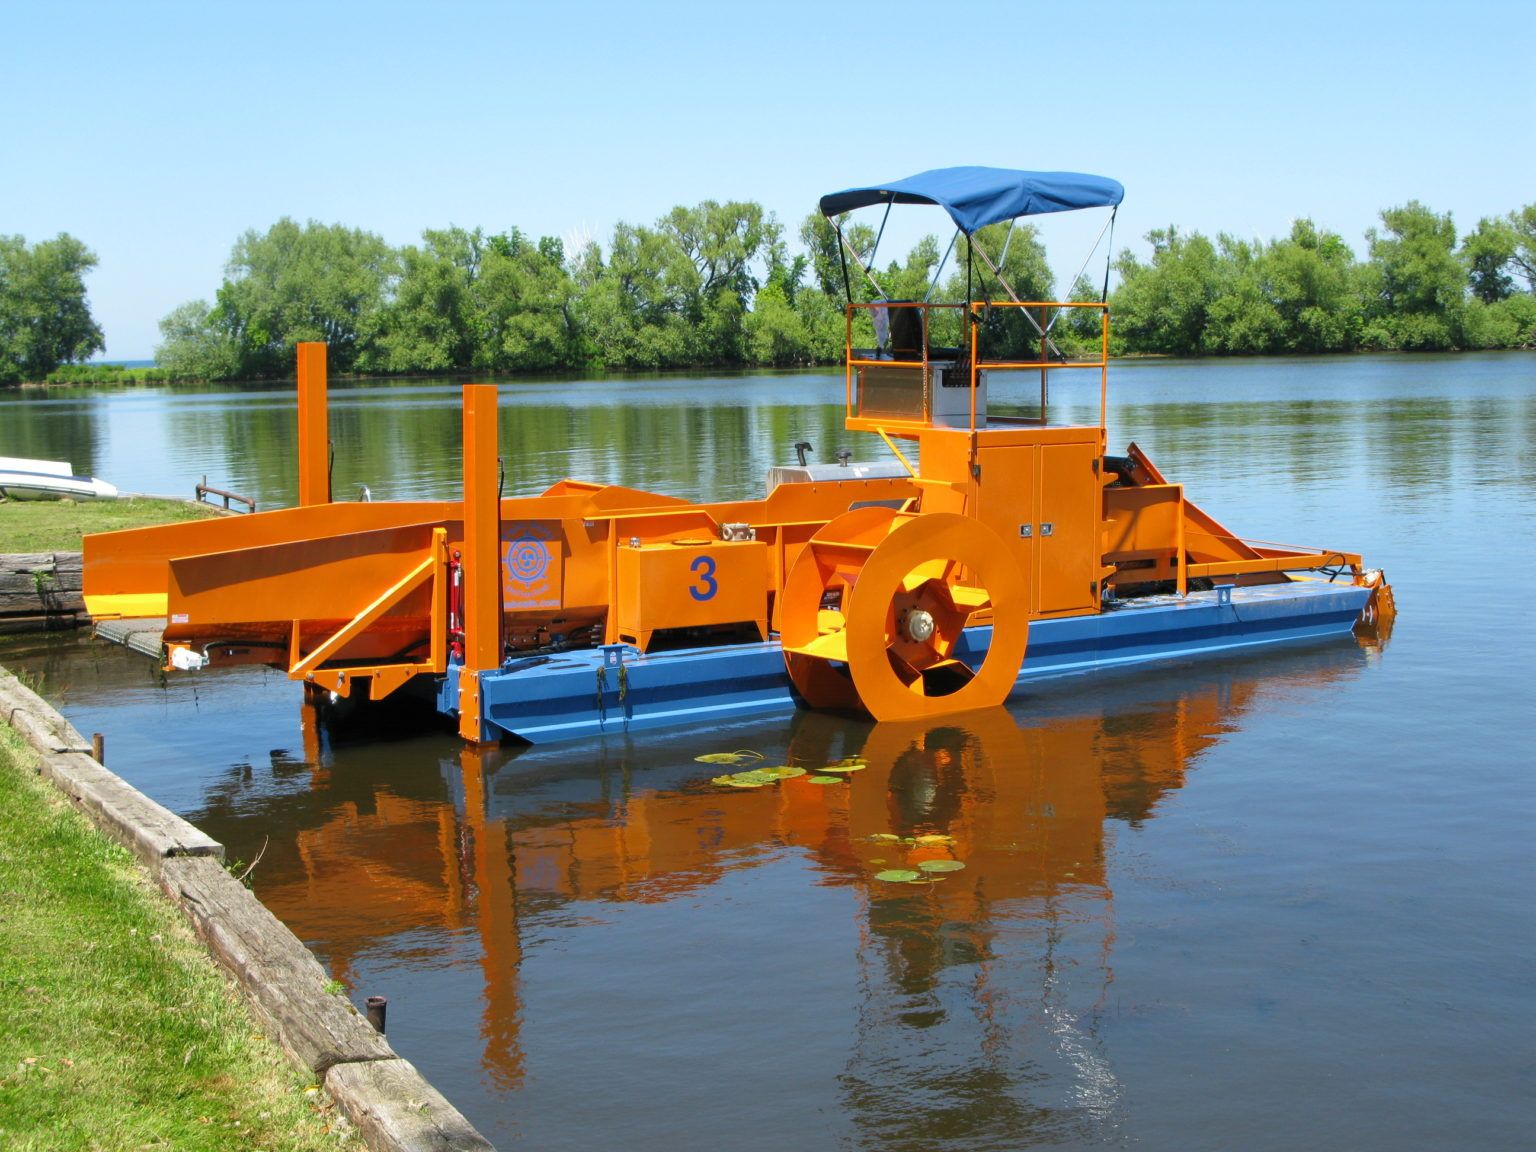 Alphaboats FX7 Waterweed Harvester with Spuds Anchored